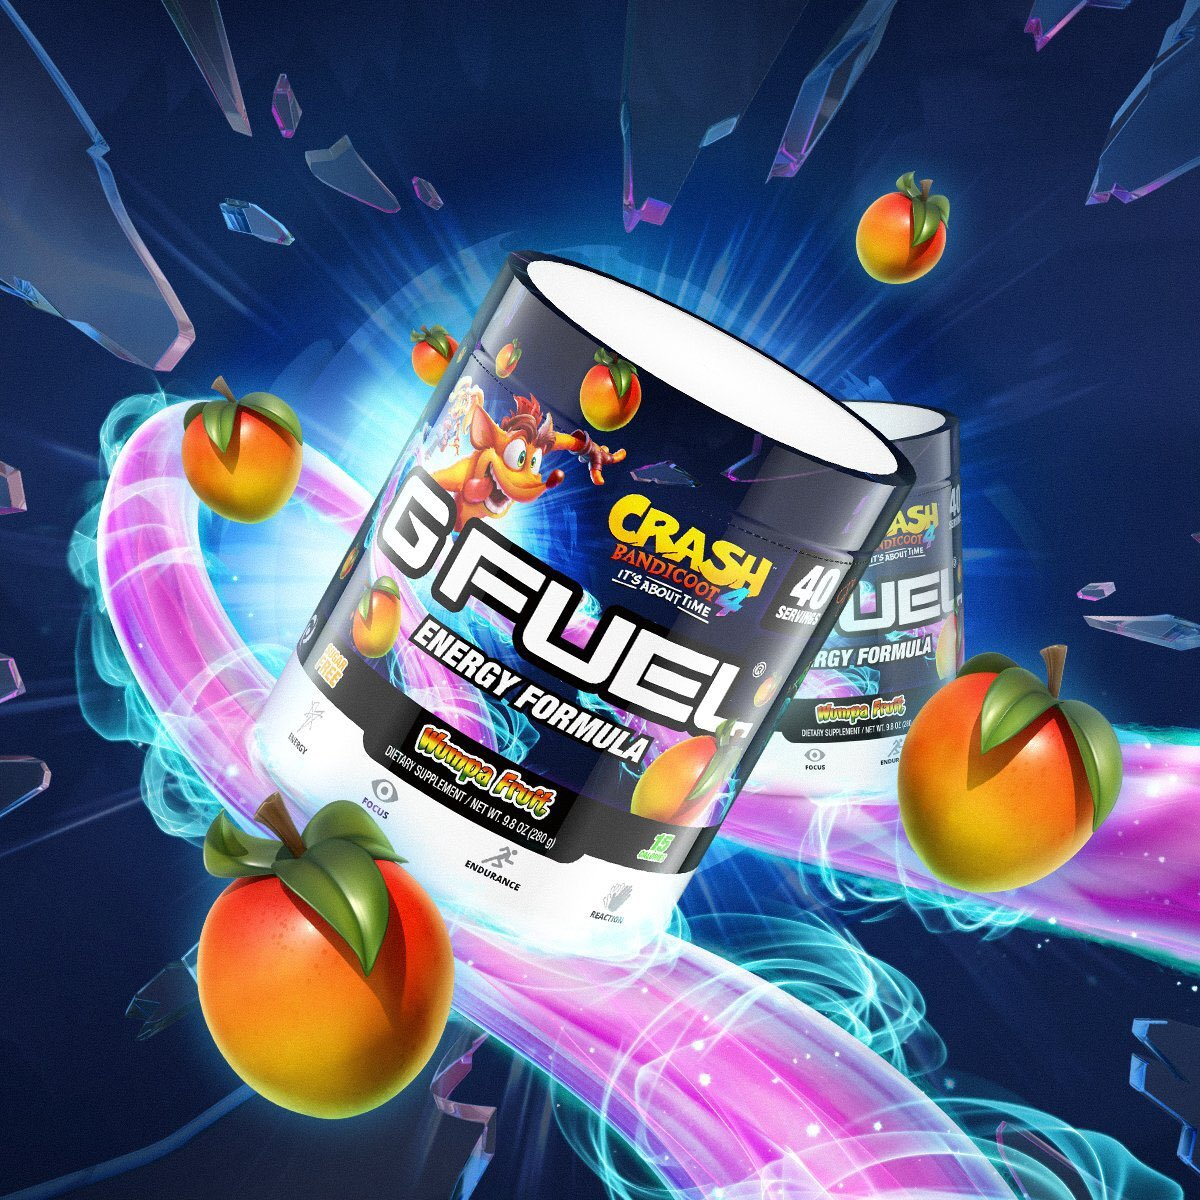 Its about time for some N. Sane Flavor!🤪 N. Sane Energy! 💪 N. Sane Adventure! 🗺 Celebrate Crash Bandicoot on his journey to save the multiverse with @GFuelEnergy Wumpa Fruit 🥭 bit.ly/2MmSRf4